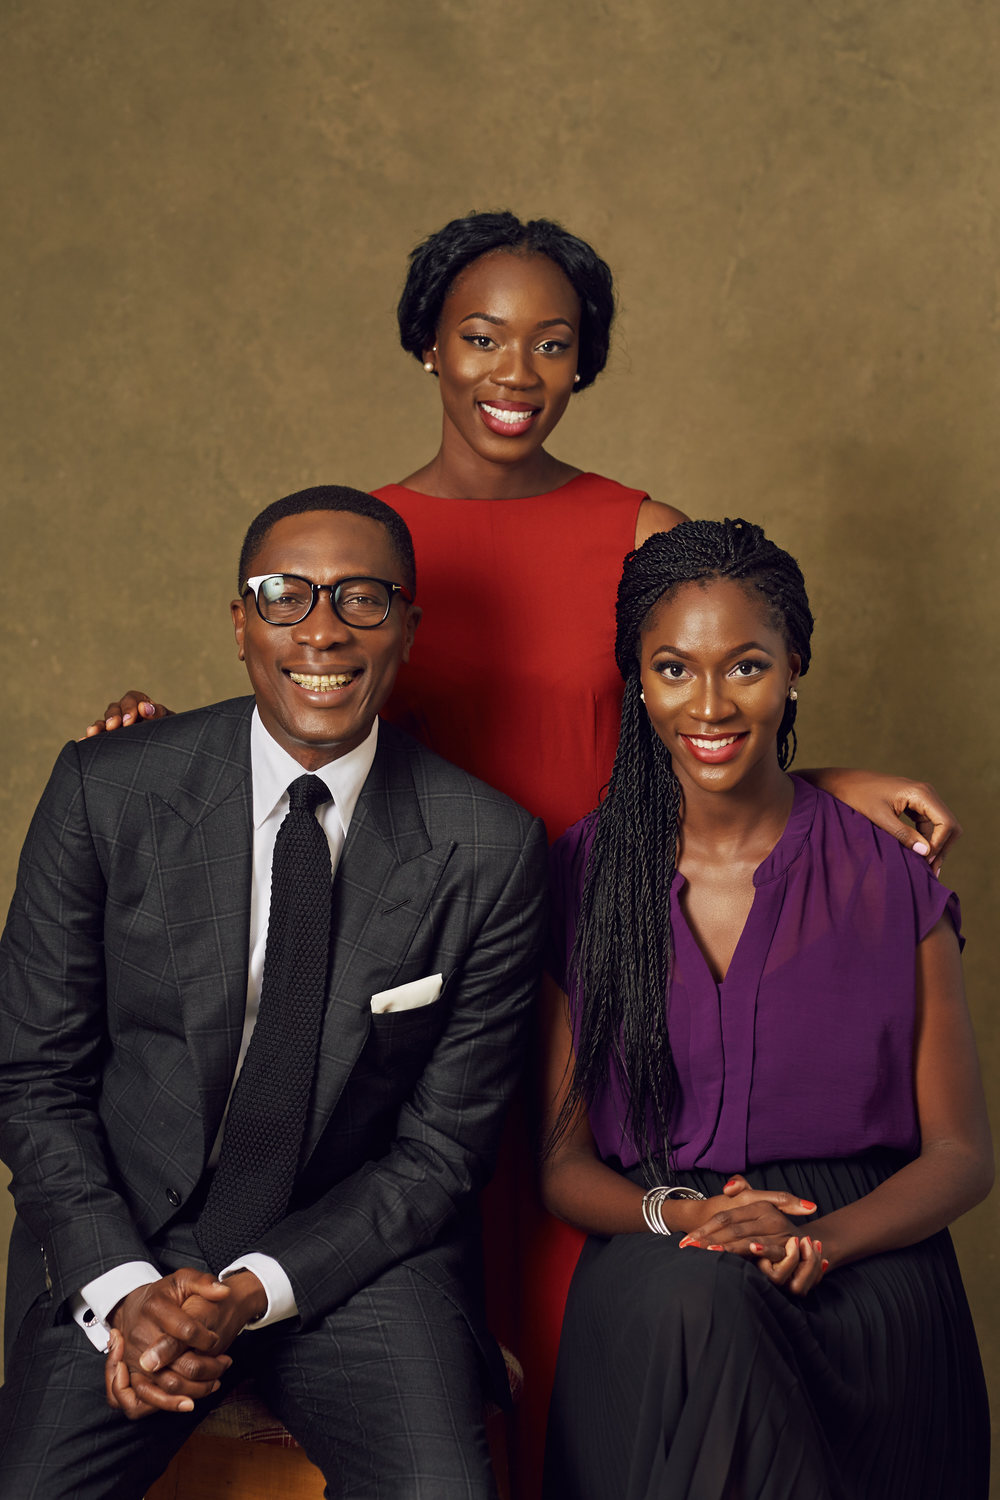 Dr Tony Rapu and his daughters, Kene and Uju Picture Credit: Obi Somto Photography